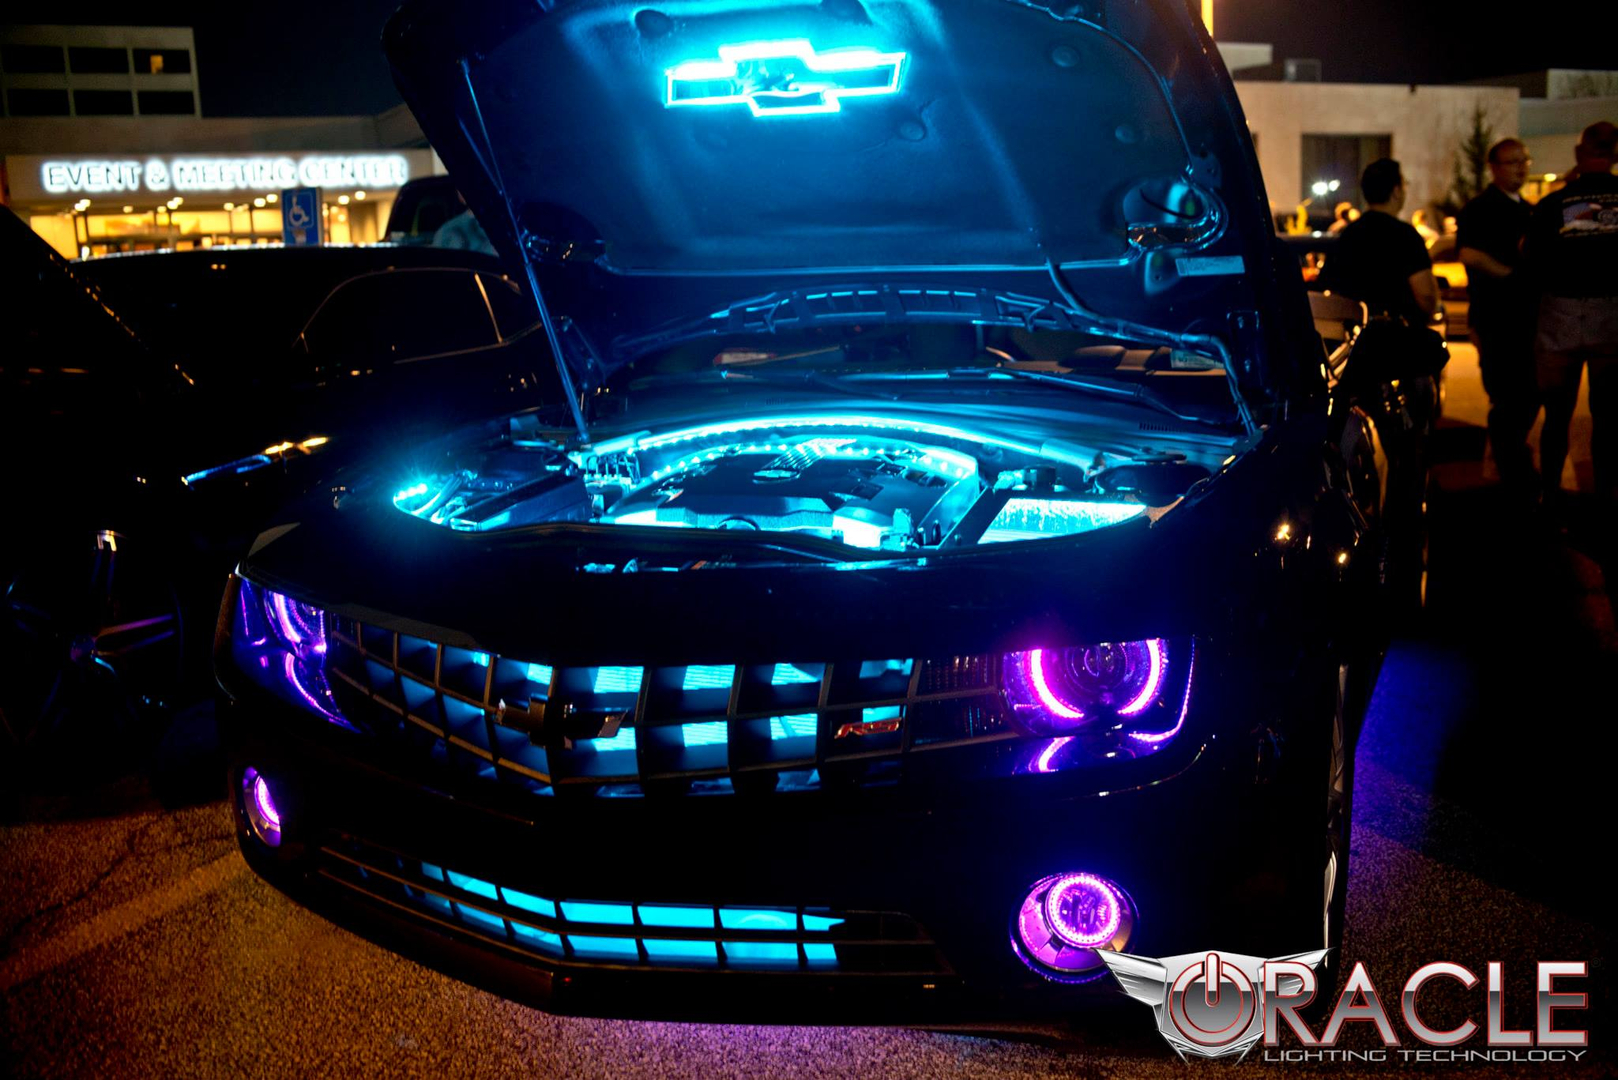 Car Truck Marine And ATV Lighting L LED Light Bars Emergency - Led car show lights